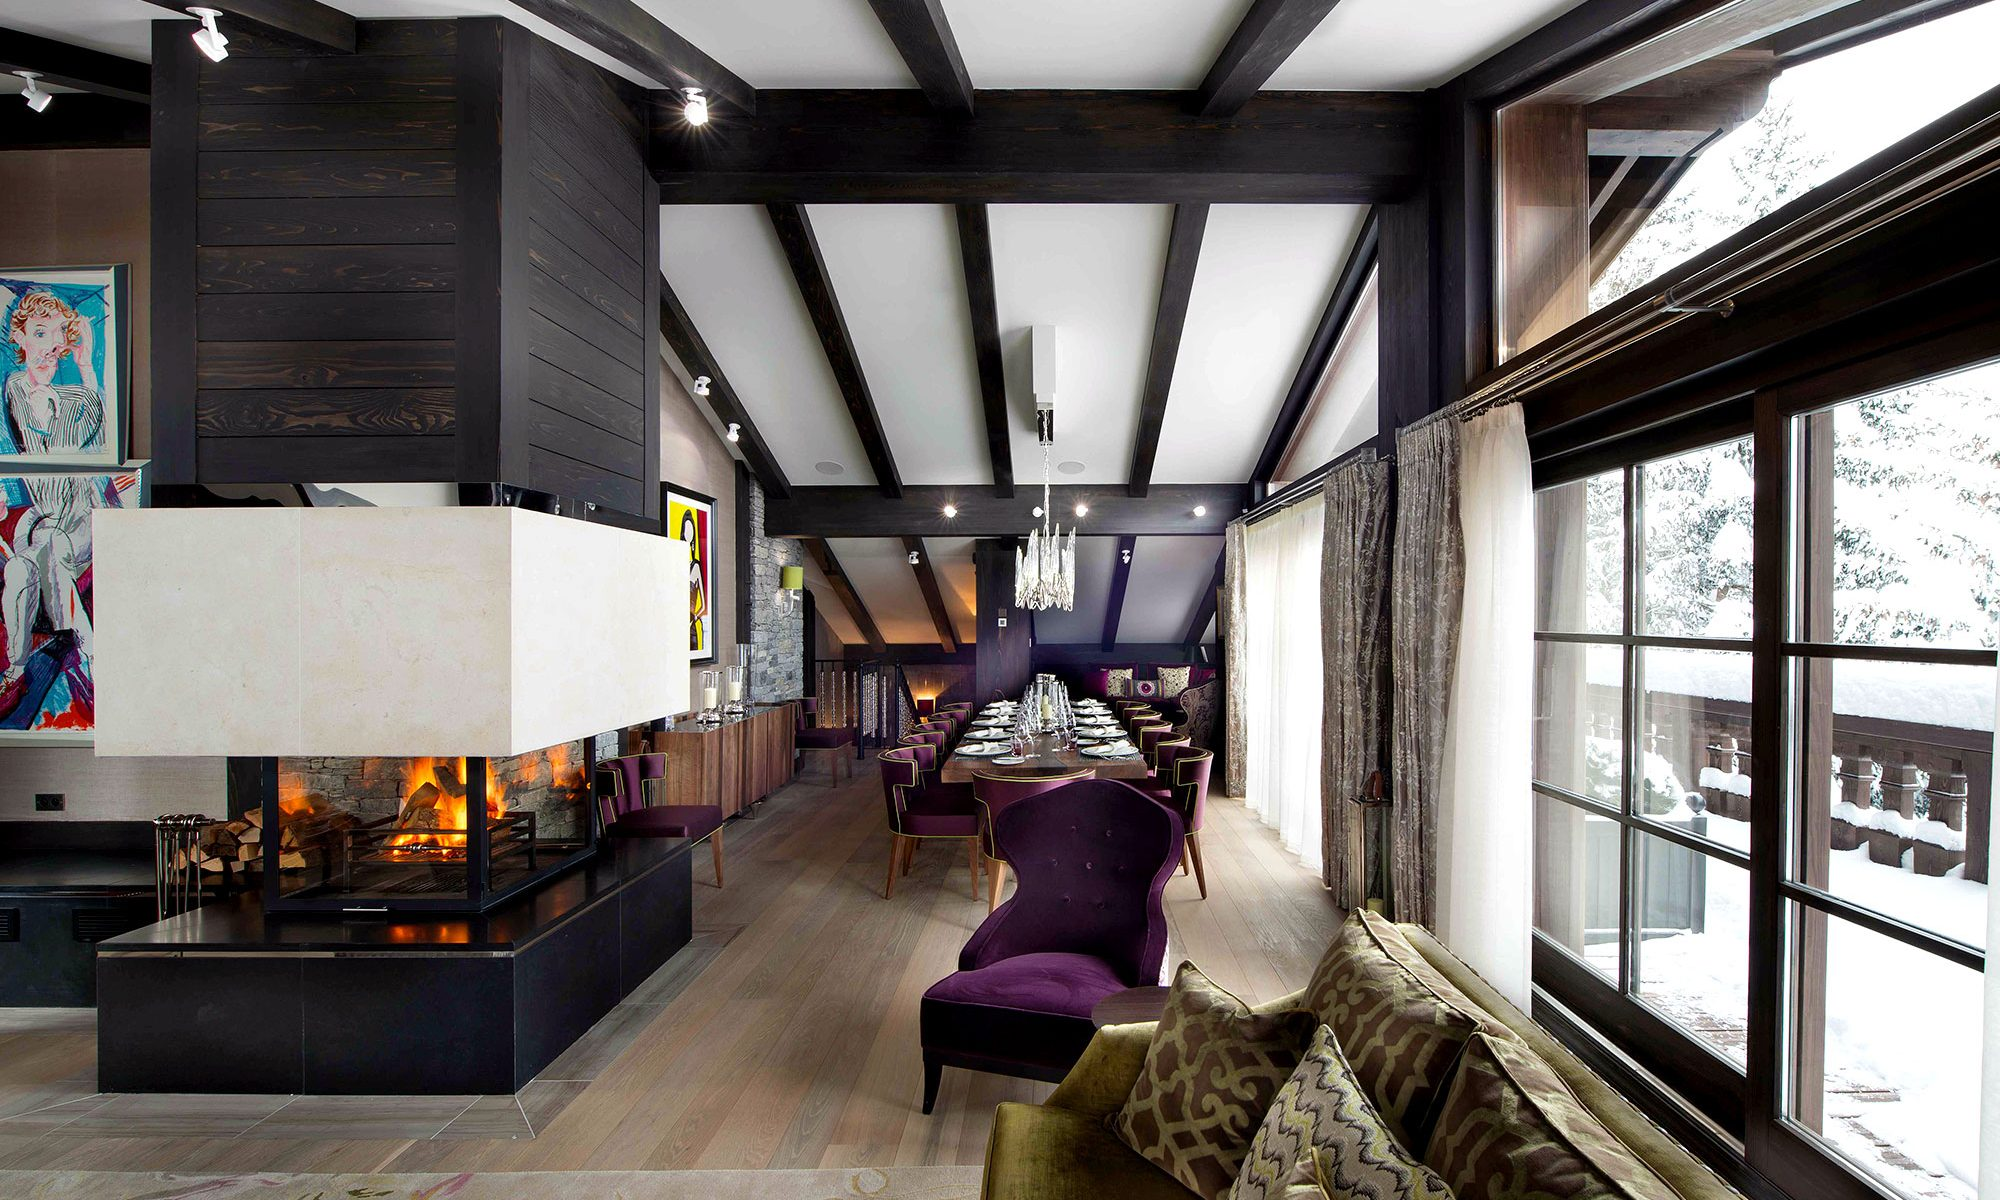 The best ski chalet interiors to inspire your apres ski style